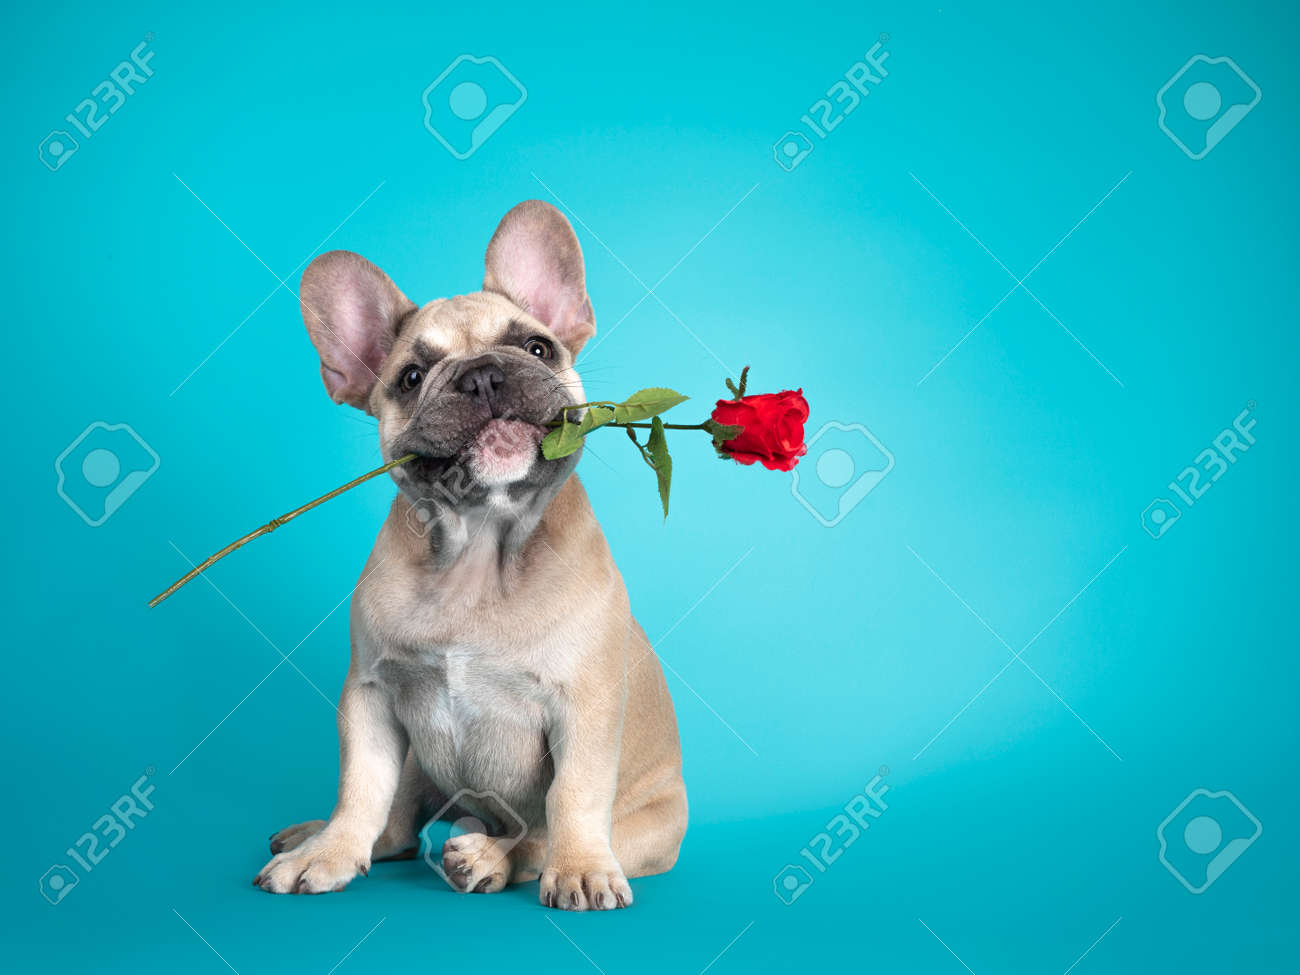 Adorable French Bulldog puppy, sitting up holding red rose in mouth. Looking towards camera. Isolated on turquoise background. - 173357241